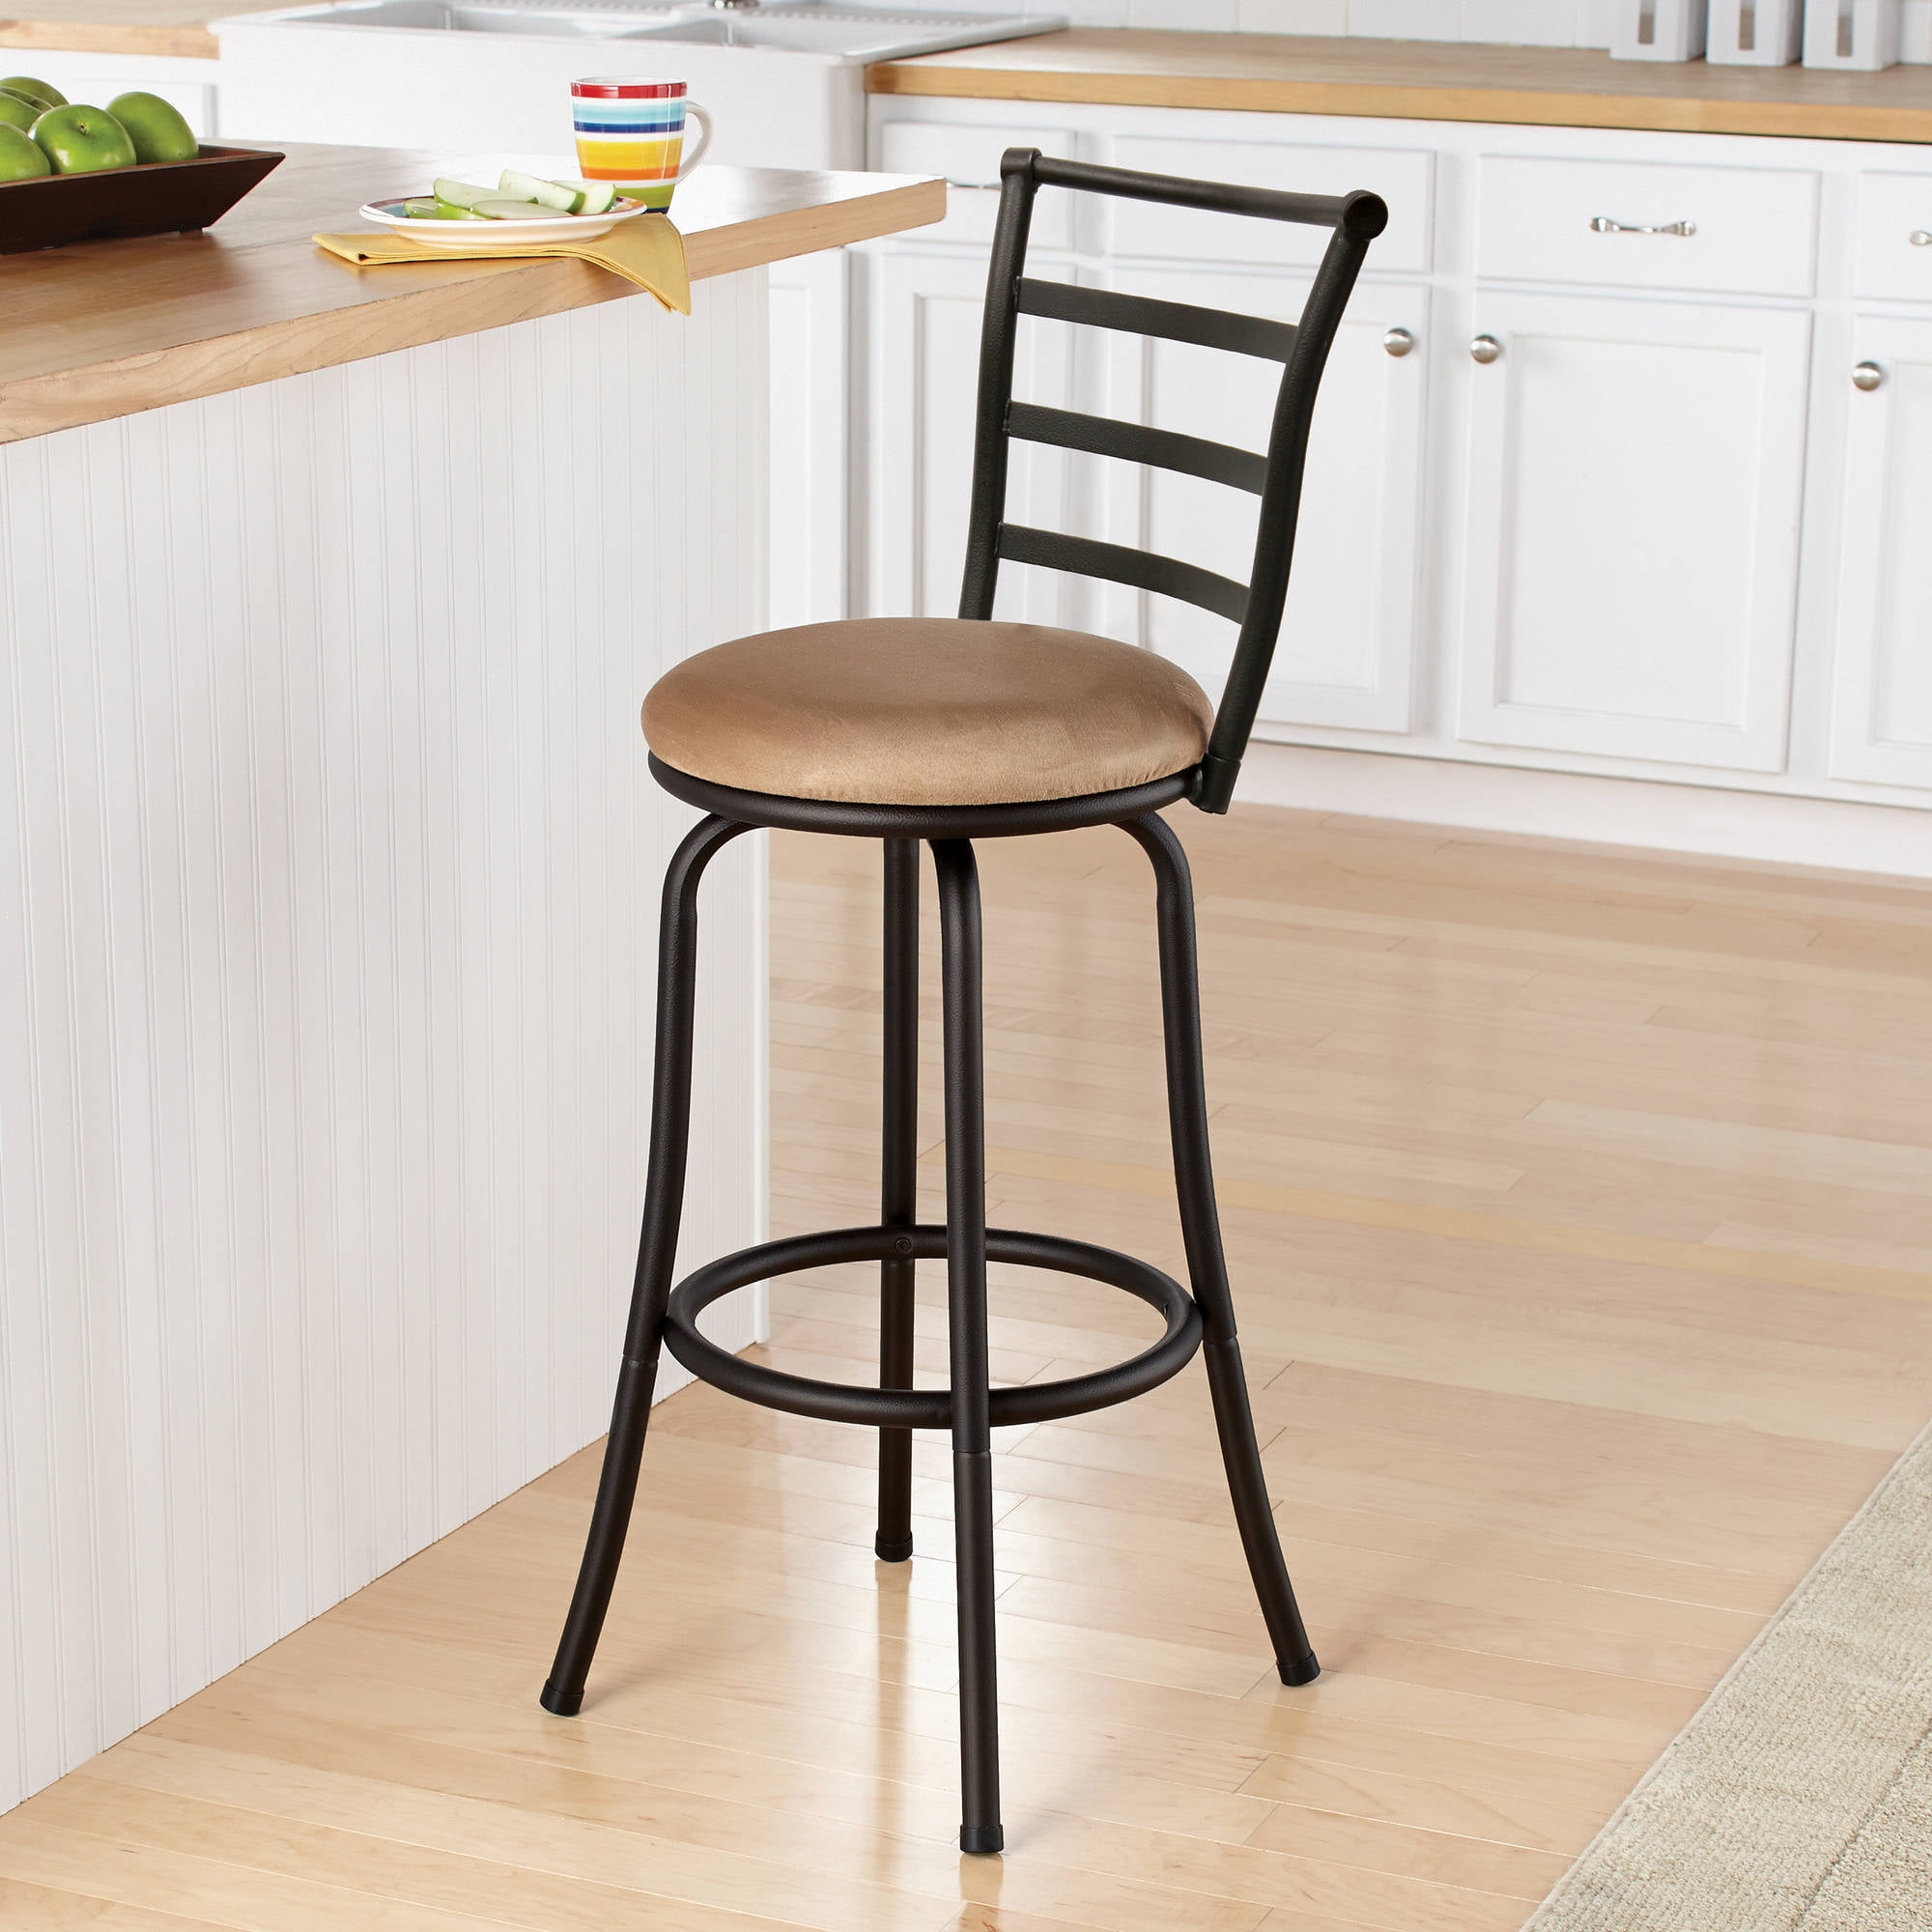 black white swivel furniture leather base foot bar stools fabulous interior silver back adjustable and combined triangle comfortable inch rest plus are stool no stand with square steel